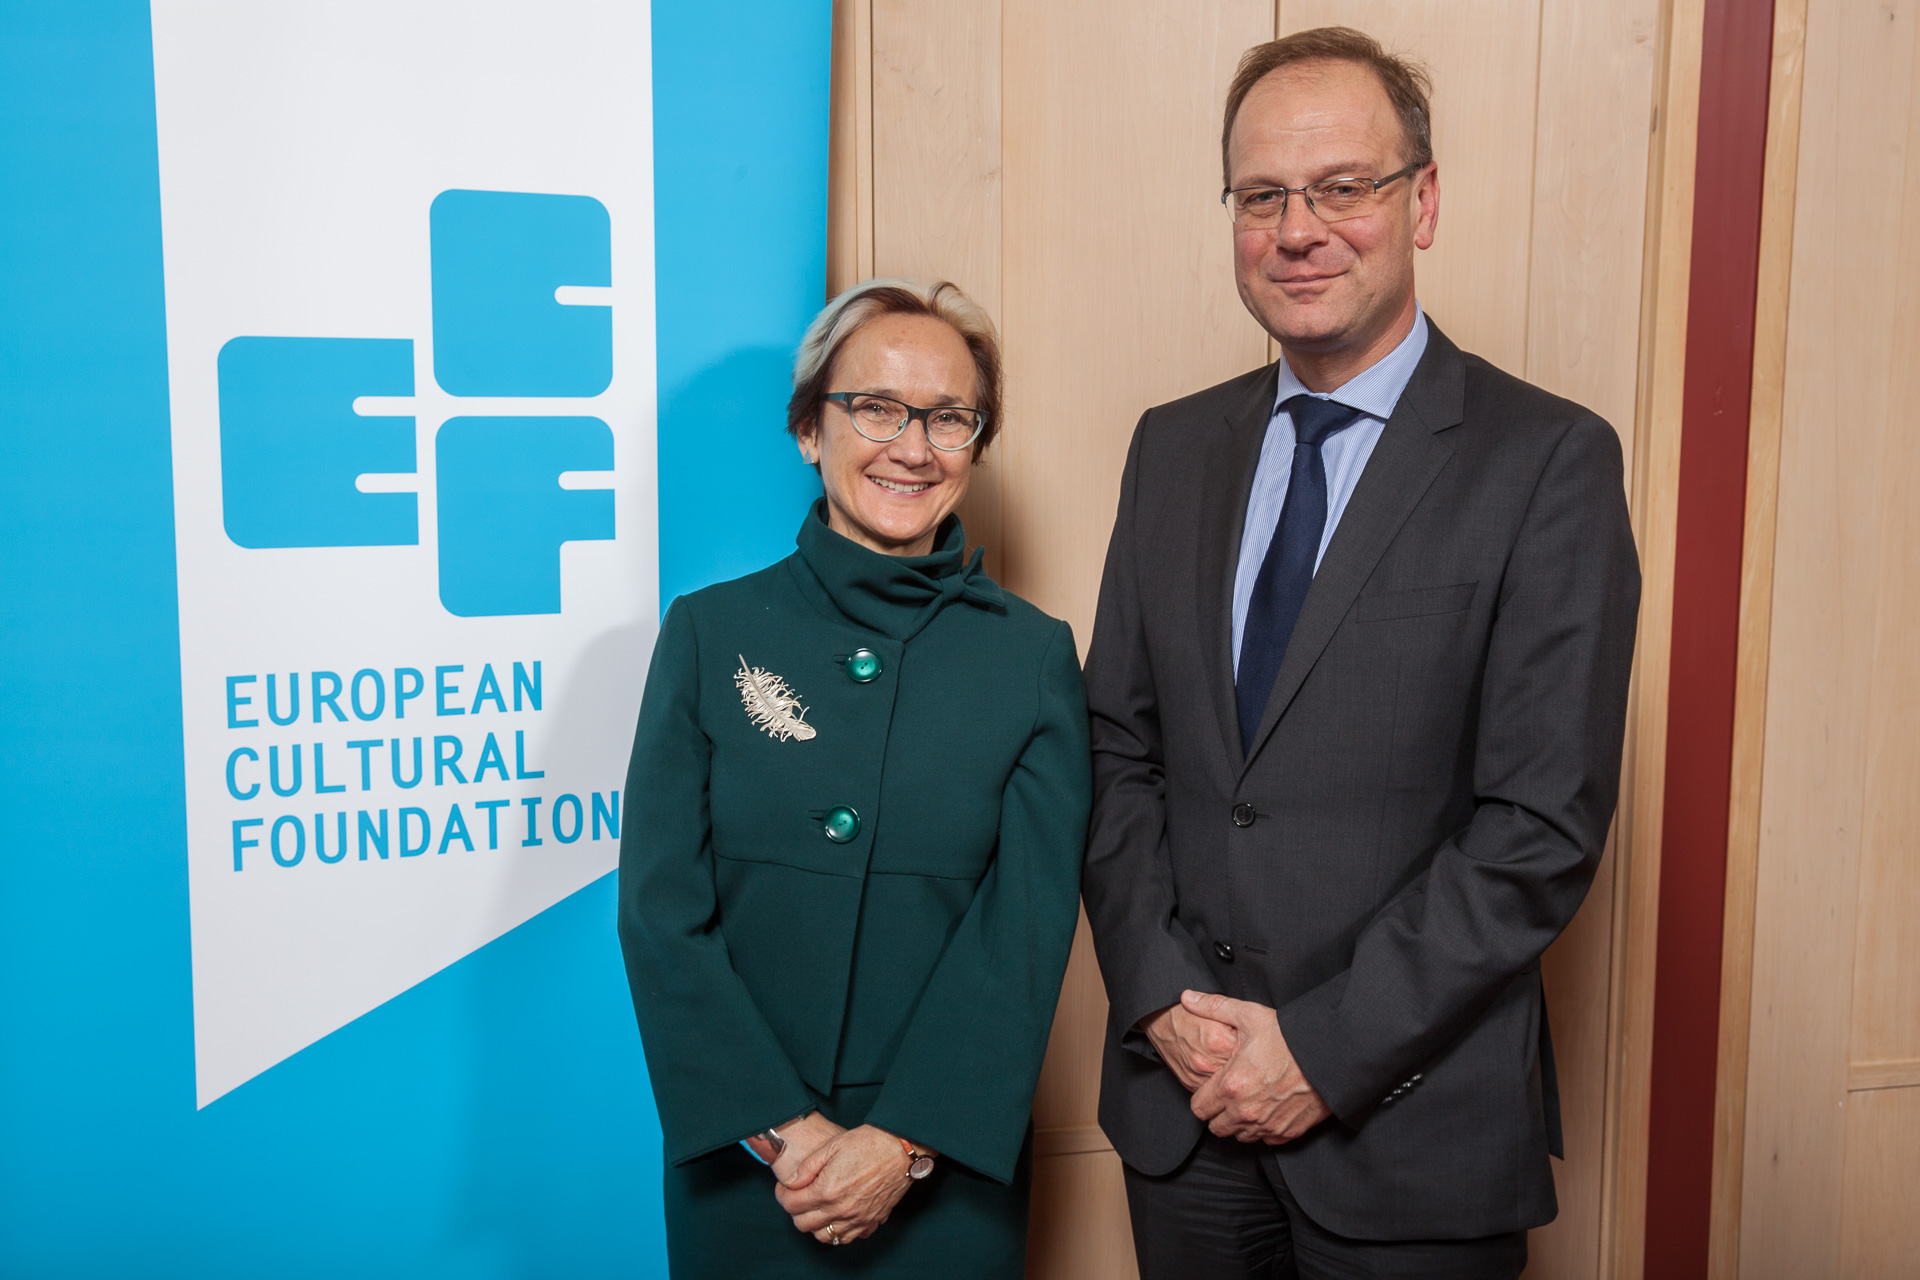 ECF Director Katherine Watson and Tibor Navracsics,EU commissioner for Education, Culture, Youth and Sport . Photo by Xander Remkes.